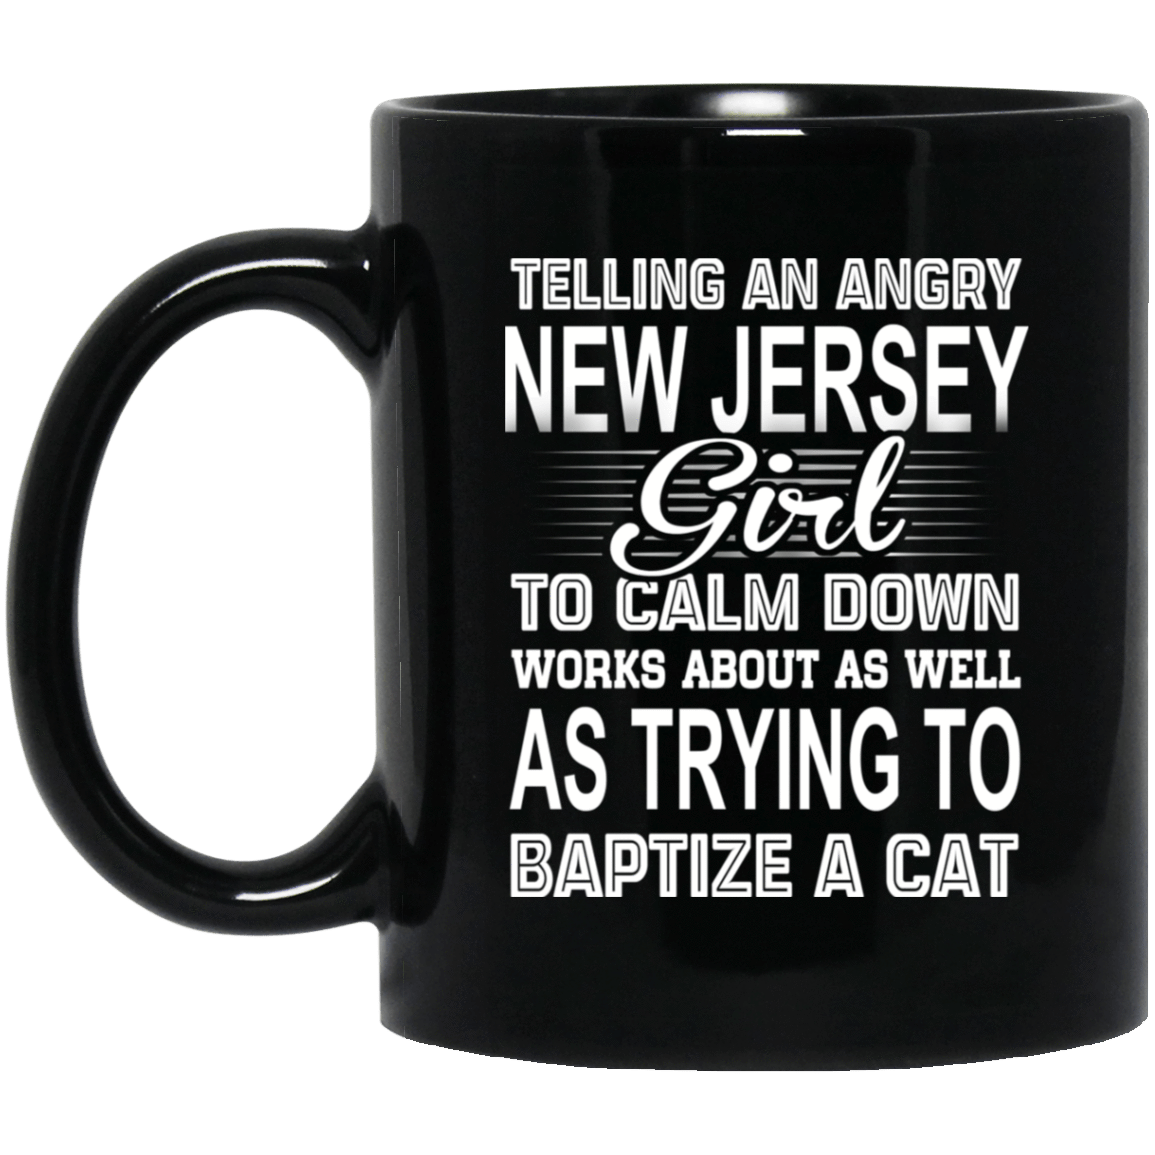 Telling An Angry New Jersey Girl To Calm Down Works About As Well As Trying To Baptize A Cat Mug 1065-10181-76151619-49307 - Tee Ript